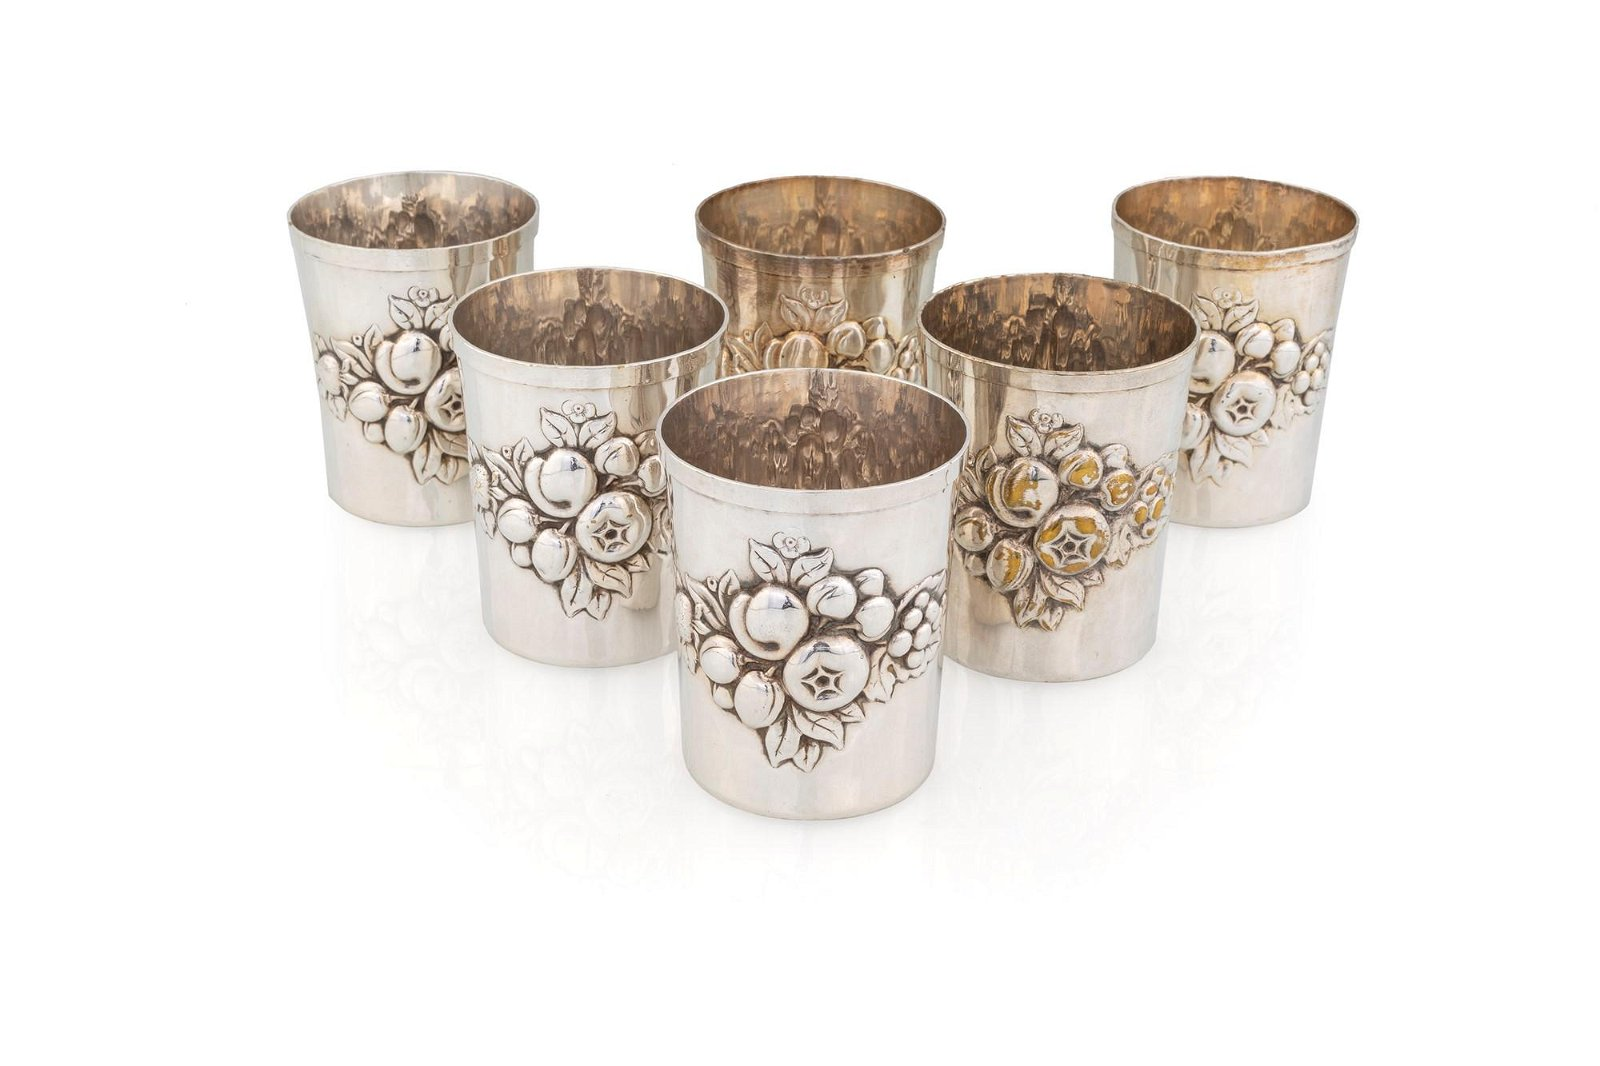 Six silver plated glasses